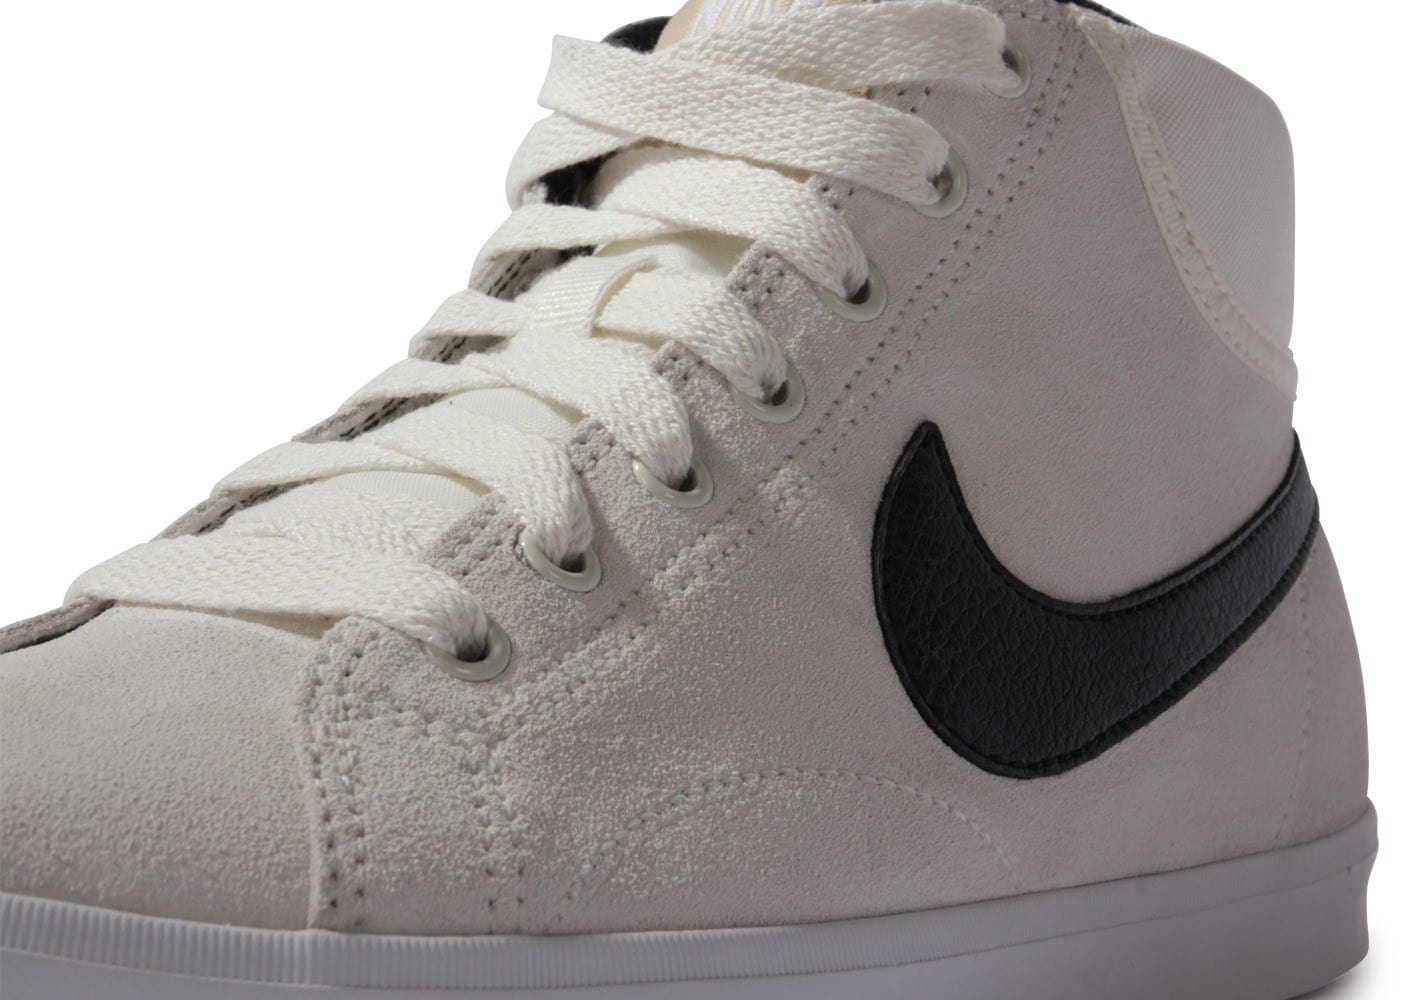 Nike Eastham Mid blanche et noire Chaussures Baskets homme